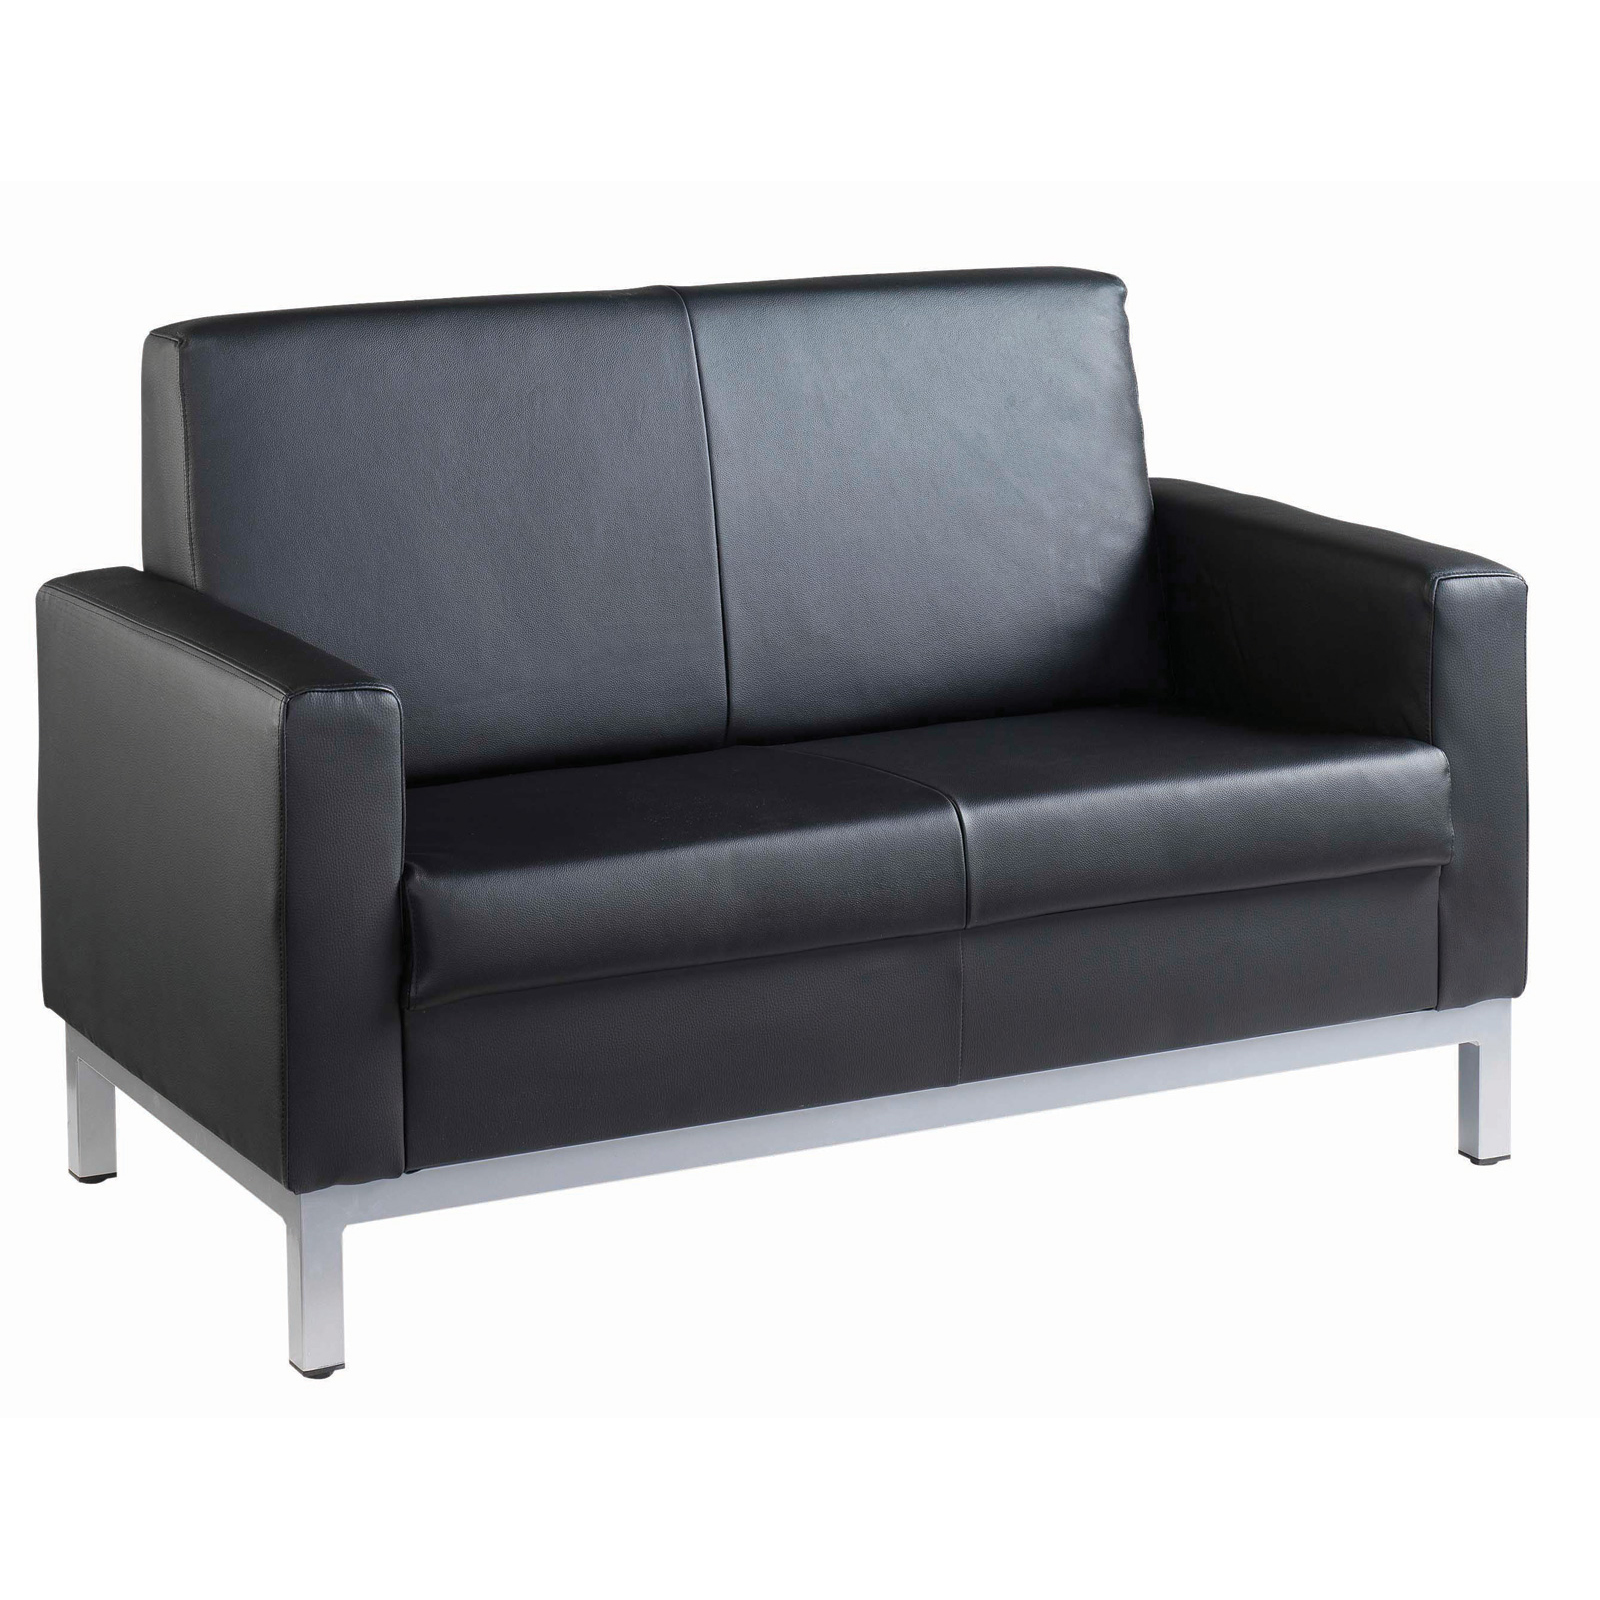 Reception Chairs Helsinki square back reception 2 seater chair 1340mm wide - black leather faced